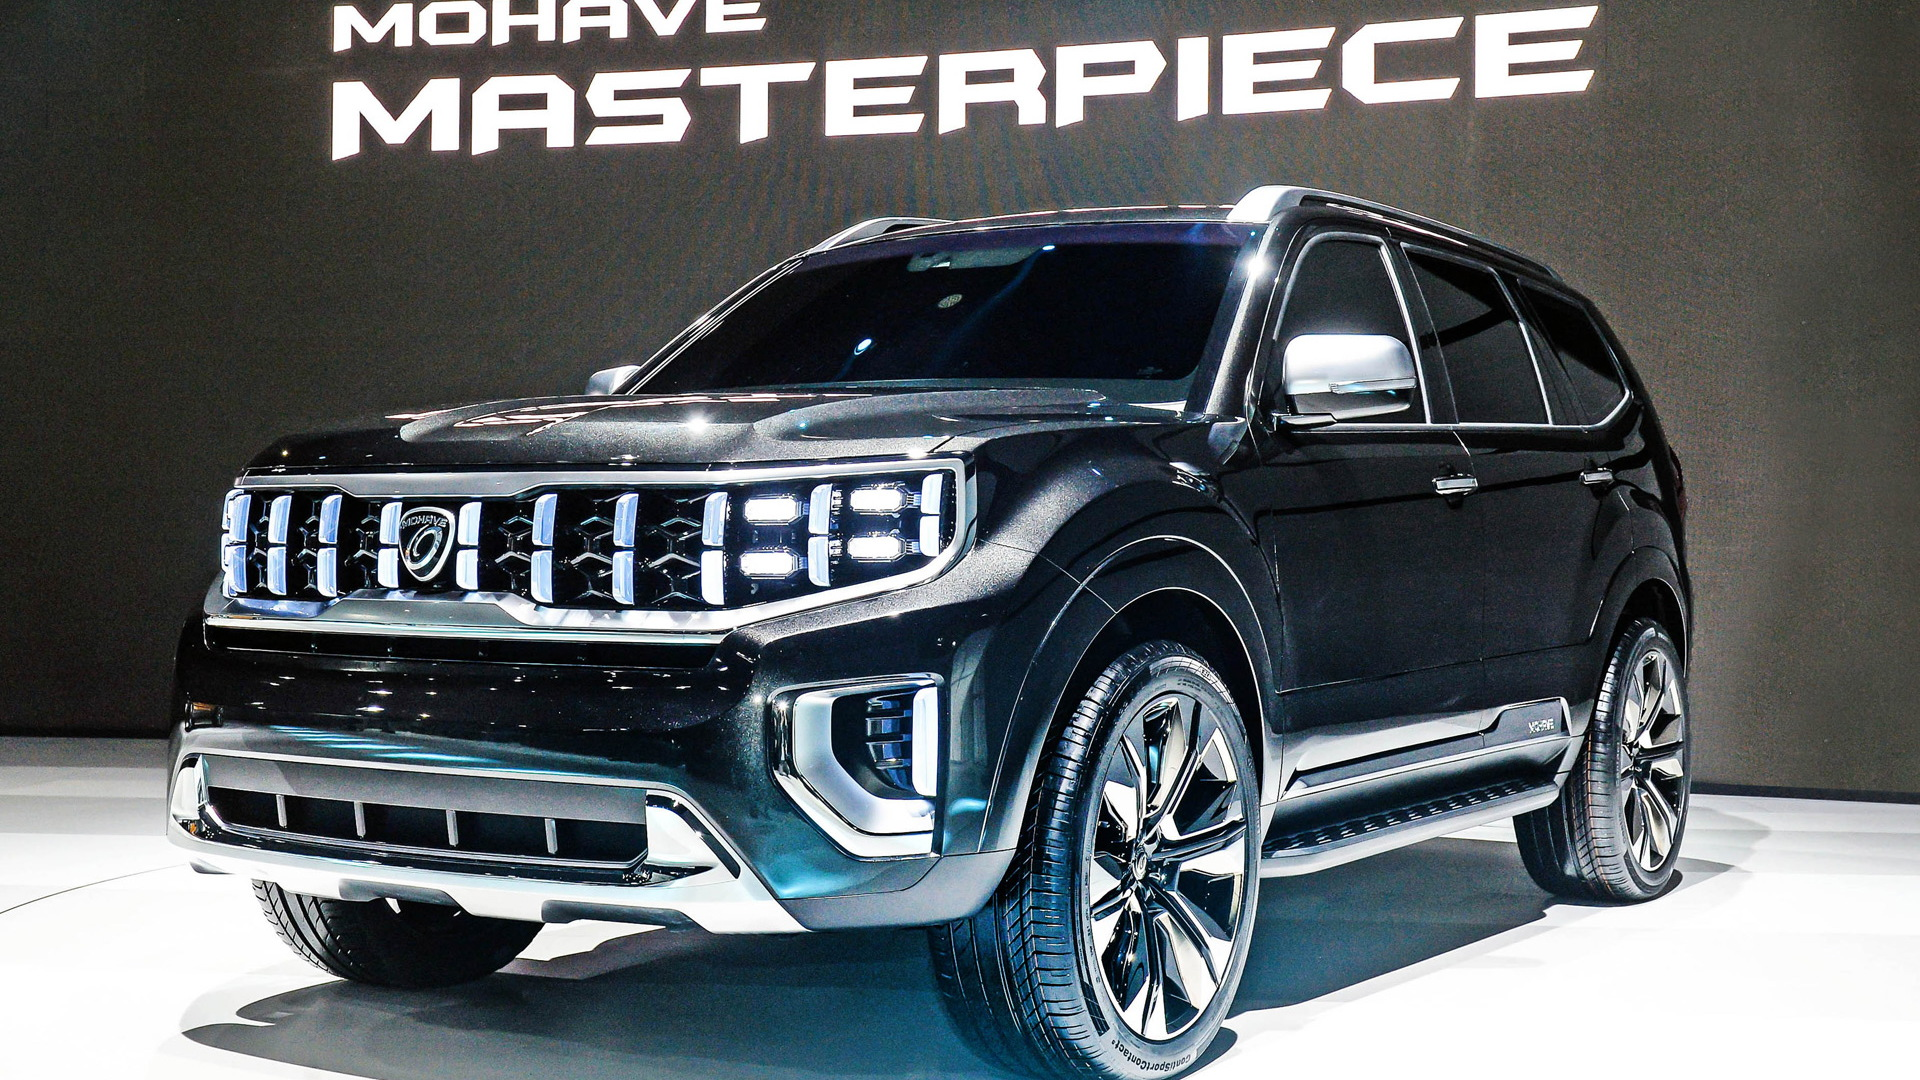 Kia teases a modern Borrego with Mohave Masterpiece concept